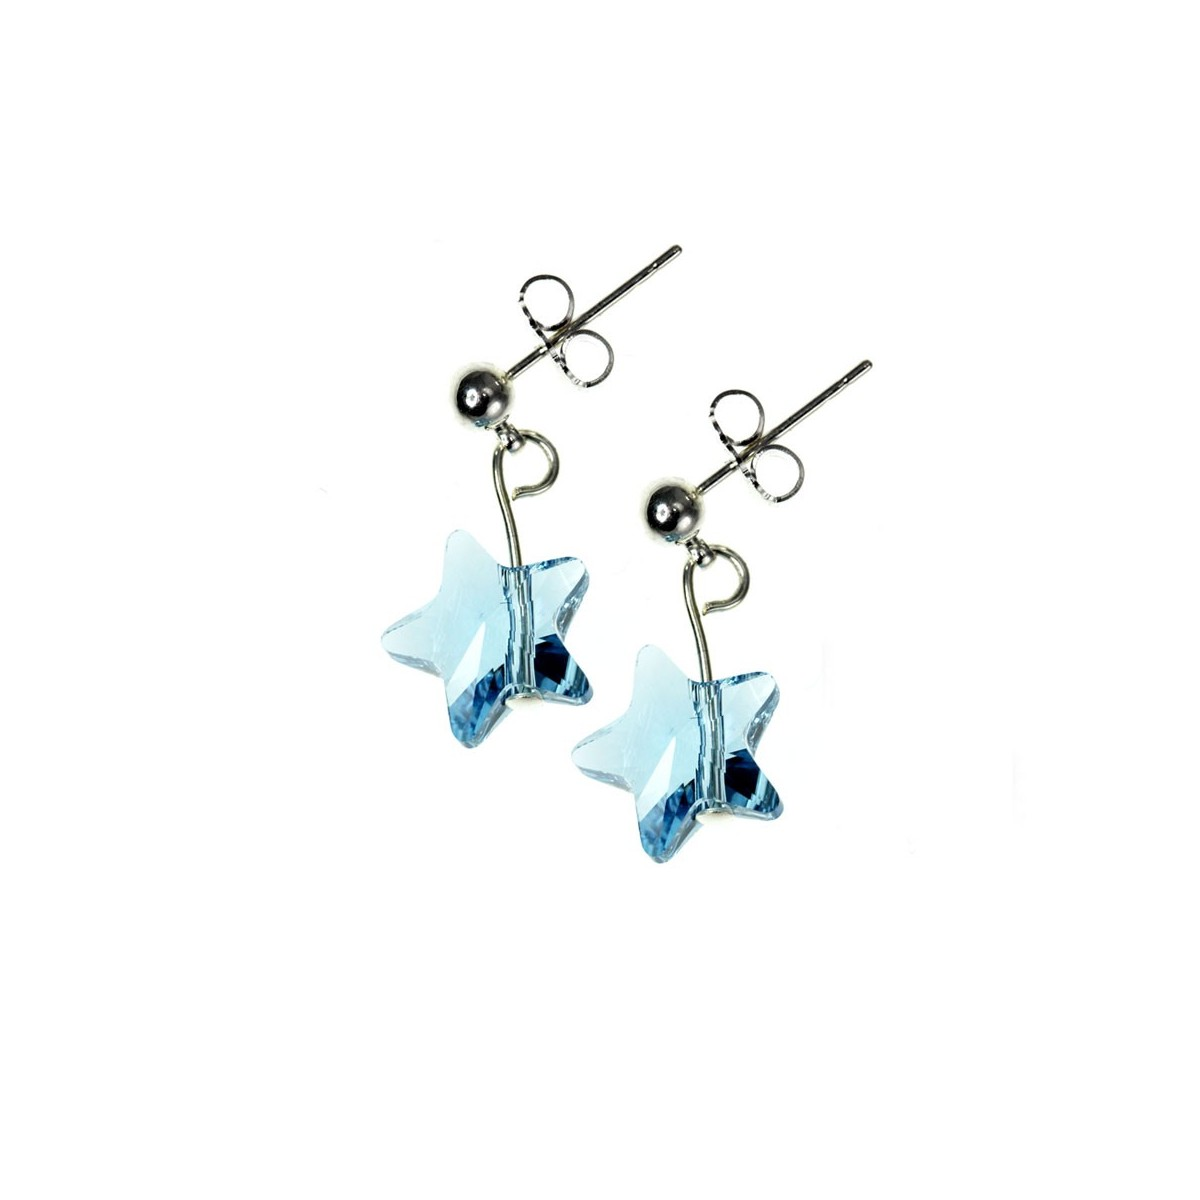 Boucles d'oreilles So Charm ornées d'une étoile bleu made with crystal from Swarovski